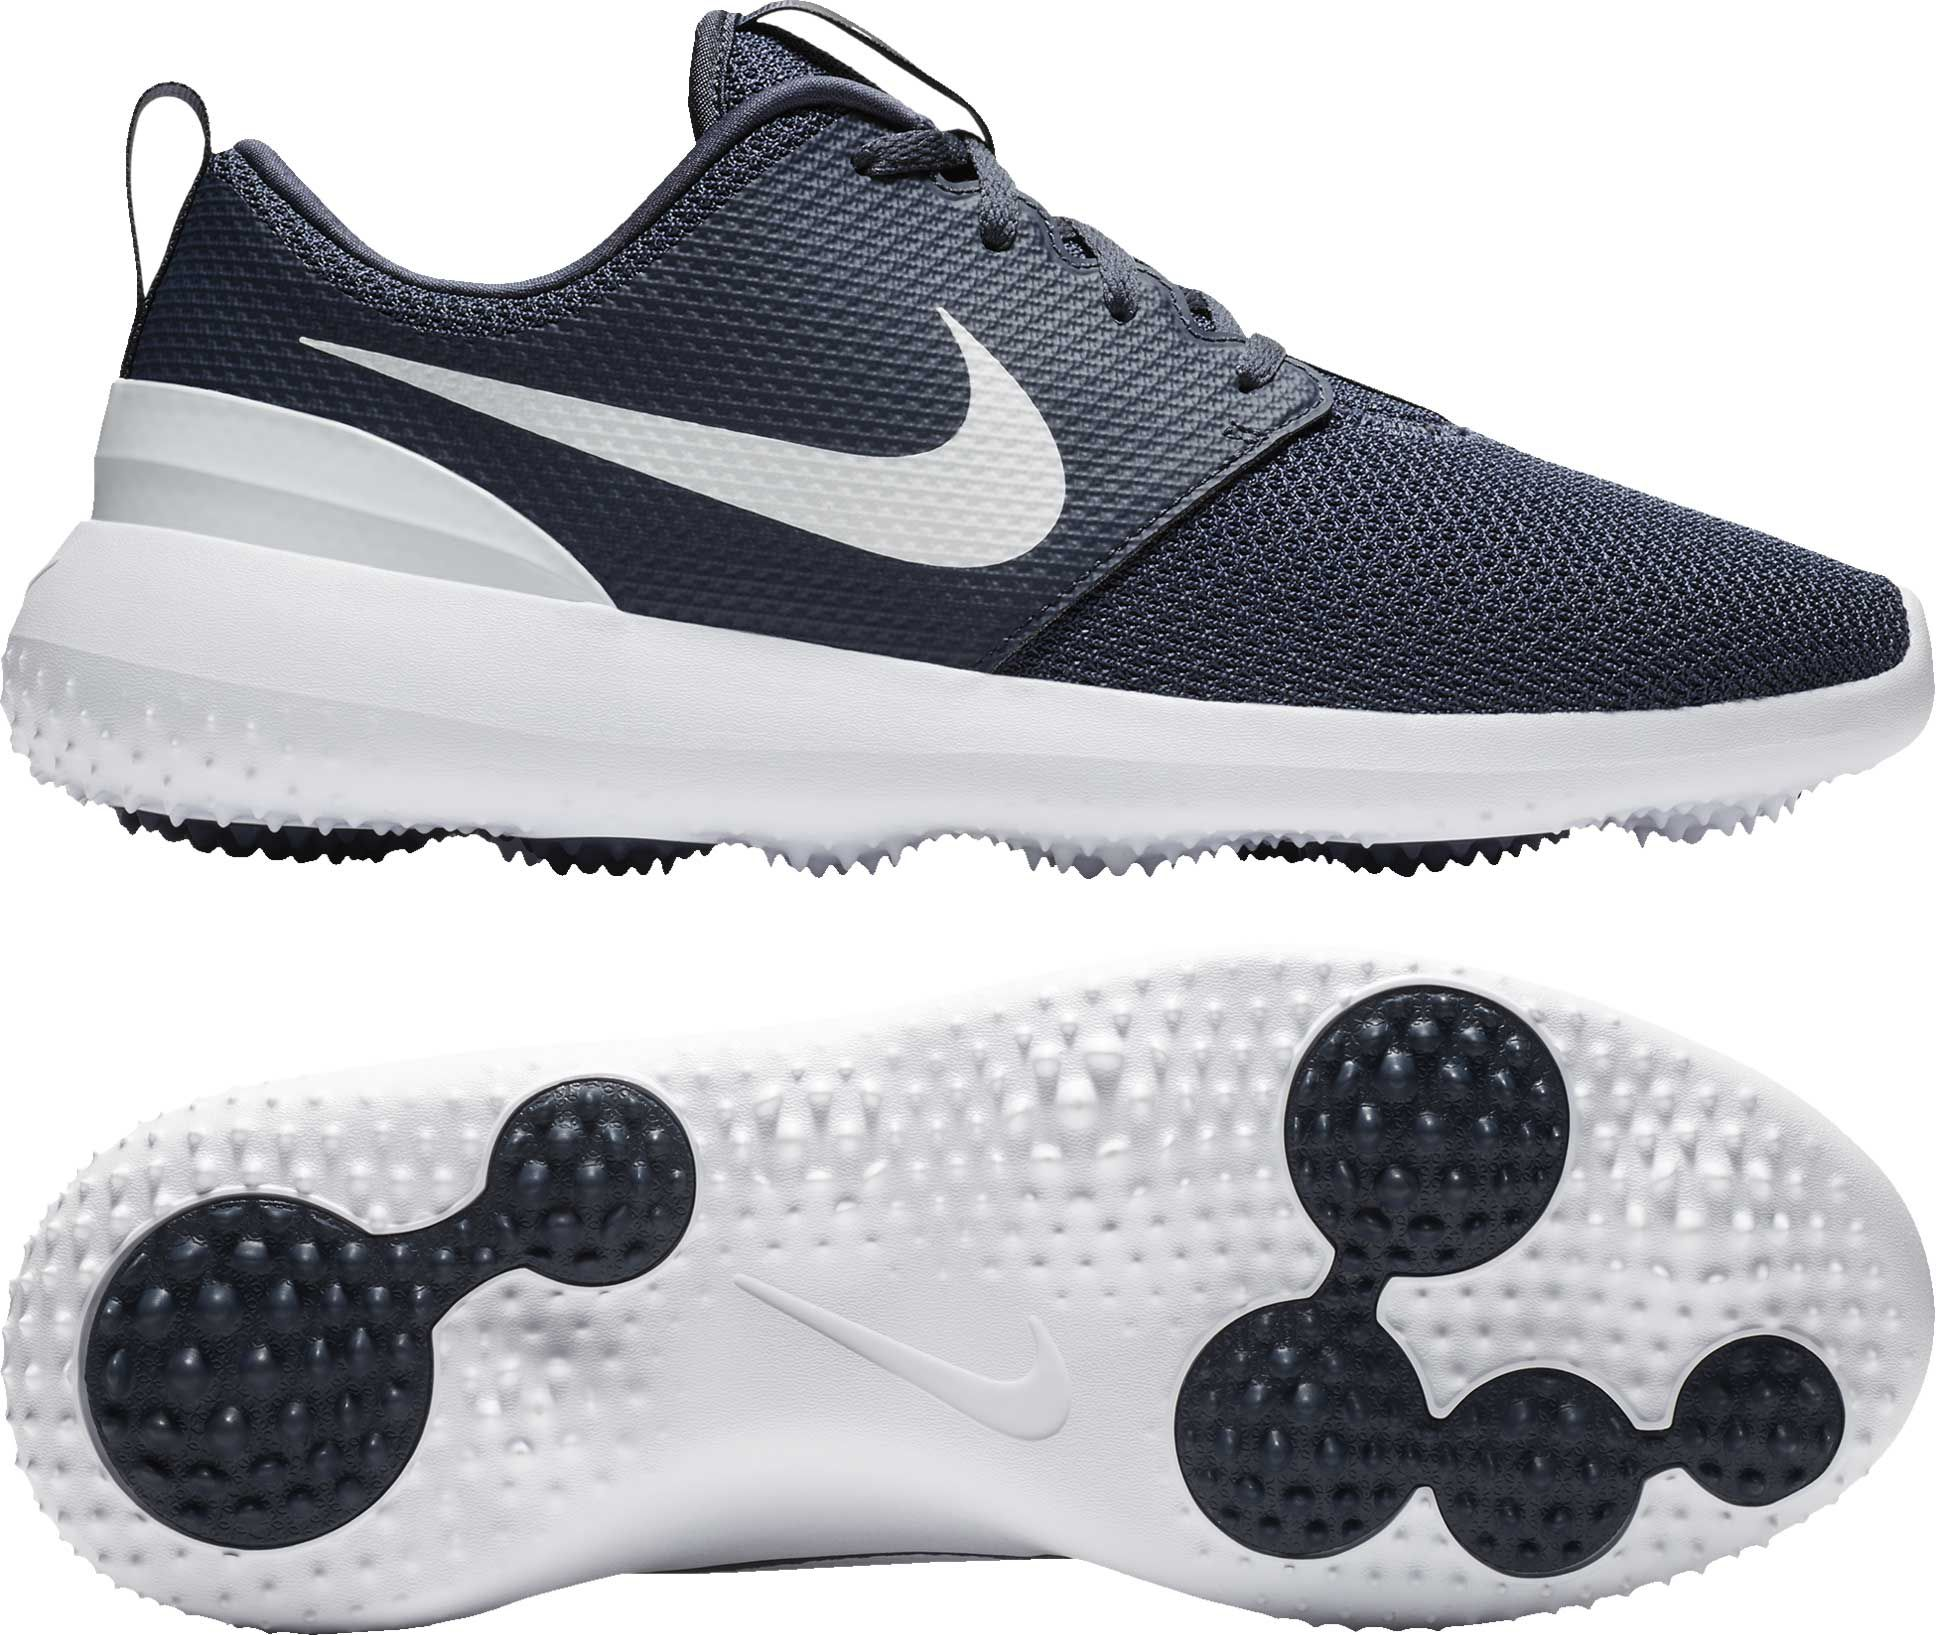 Nike Roshe G Golf Shoes by Nike